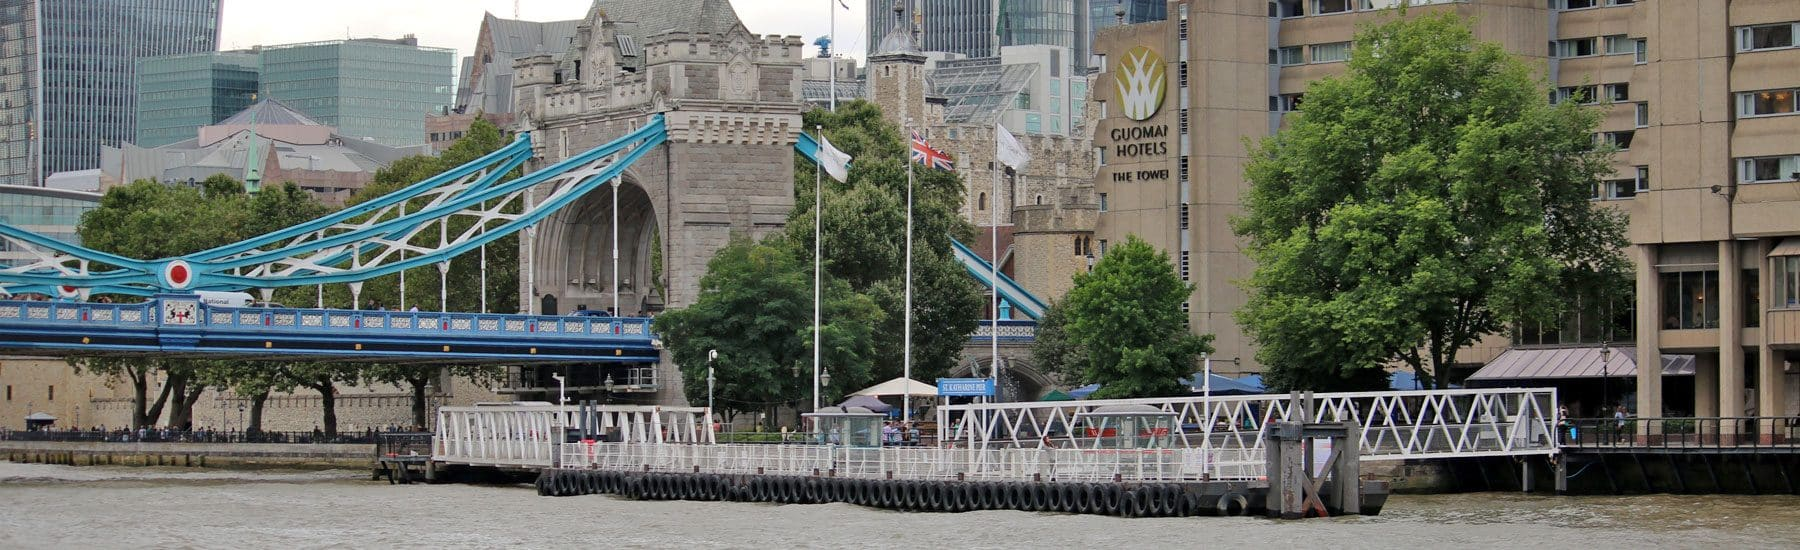 Tower Bridge Quay & St. Katharine Dock